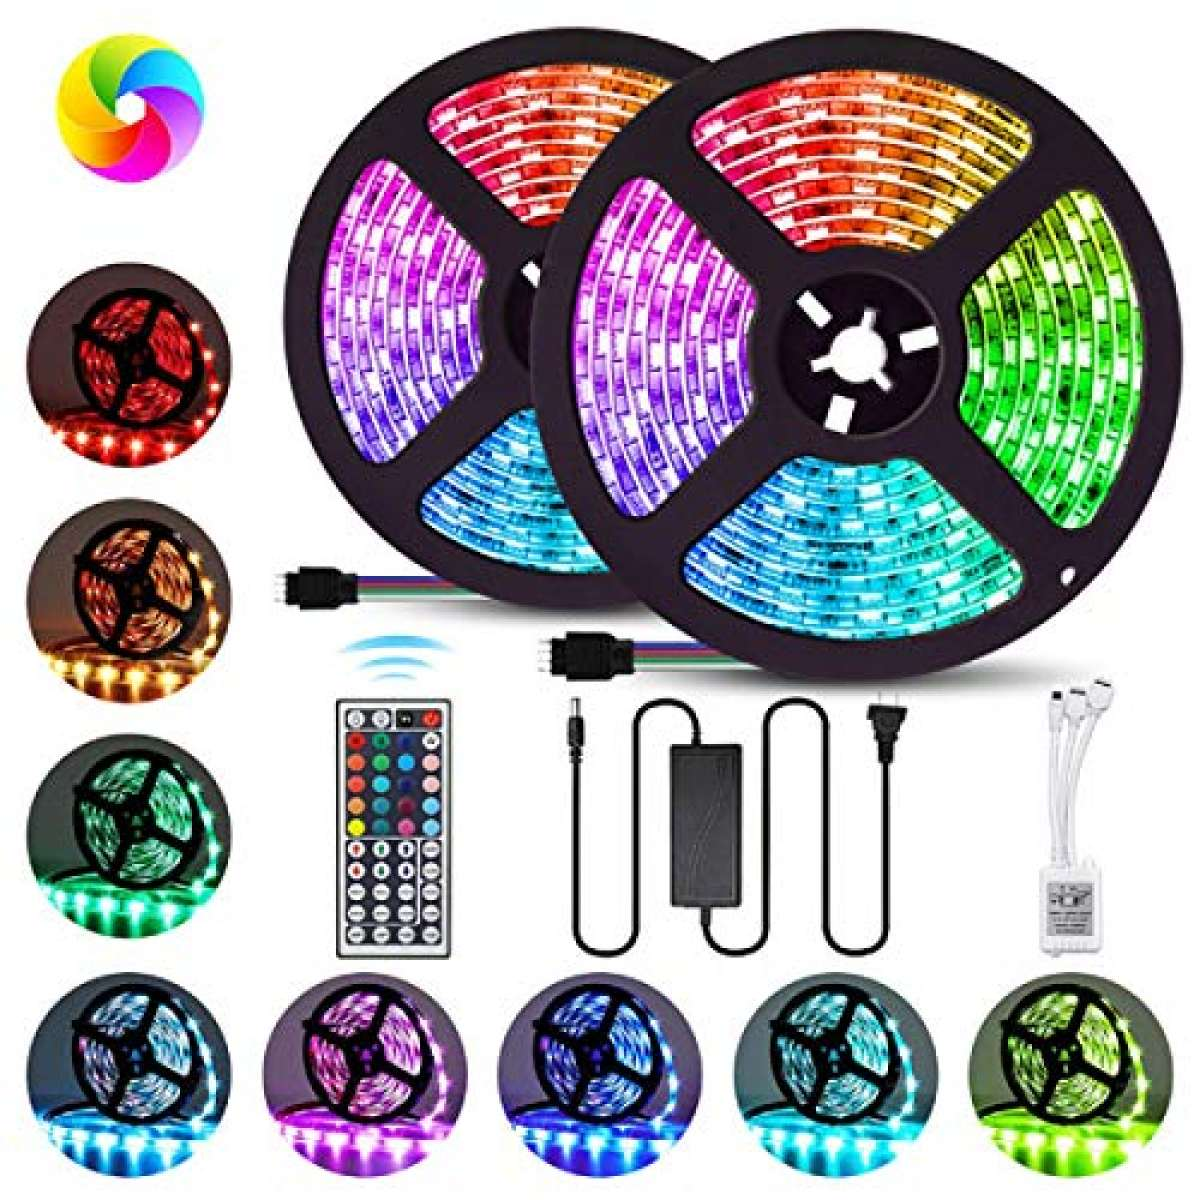 TZ Traders - RGB LED Strip Lights Best Quality 12V ADOPTER Waterproof Remote Control Color Changing 3528 - Complete Kit RGB LED Strip Lights for Party, Living Room, Ceiling, Mirror, Gaming Table, Interior